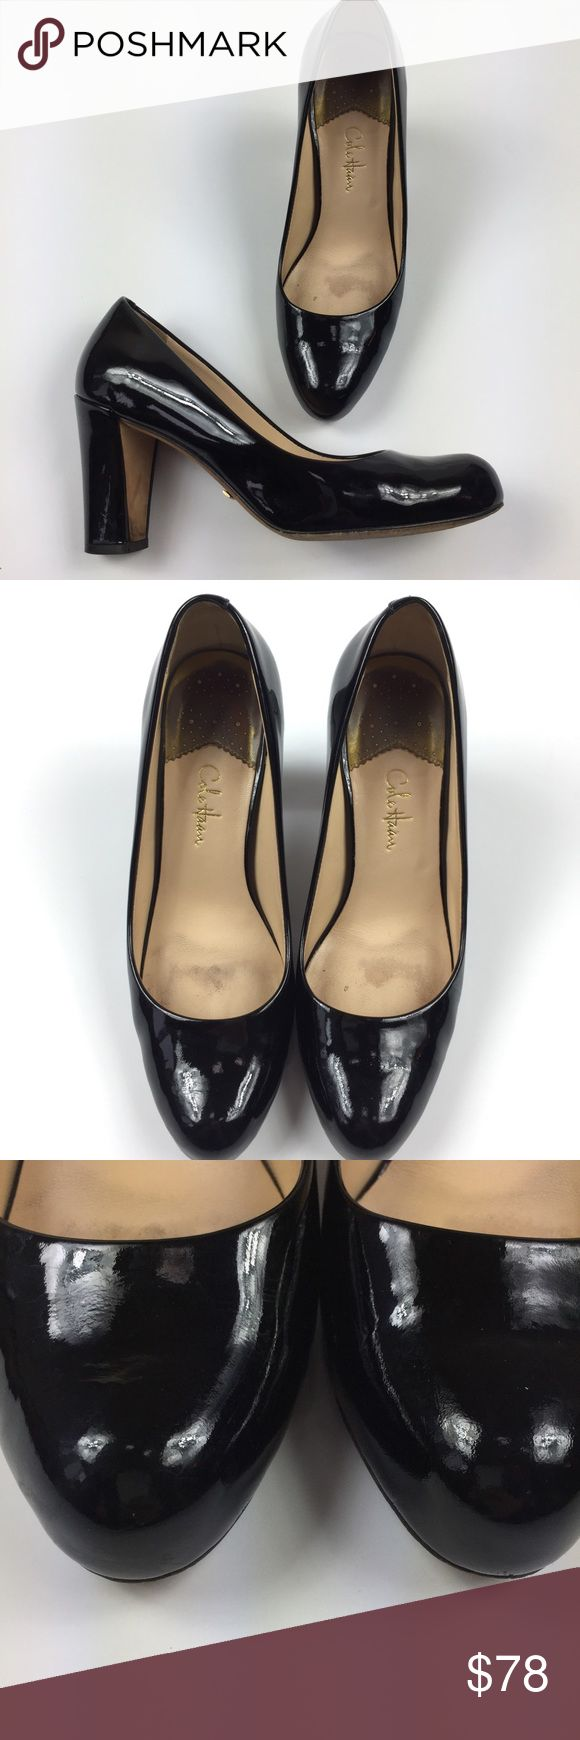 Cole Haan Patent Leather Black Block Nike Air Pump Gently worn, a few scuffs from wear still in great shape! See photos Cole Haan Shoes Heels